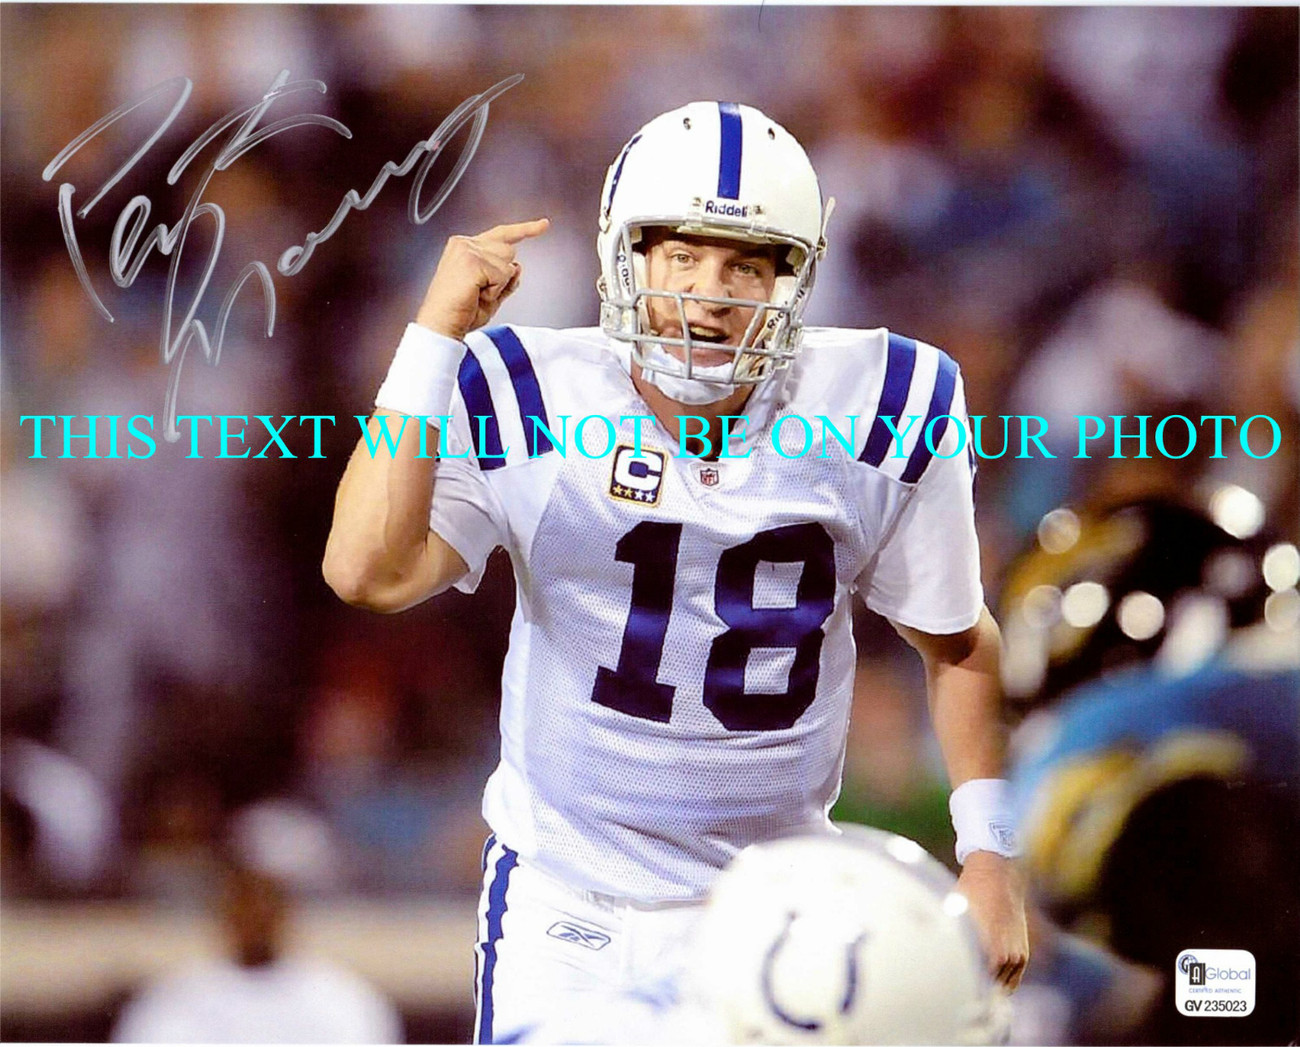 Primary image for PEYTON MANNING SIGND AUTO 8x10 RP PHOTO INDIANAPOLIS COLTS INCREDIBLE QB